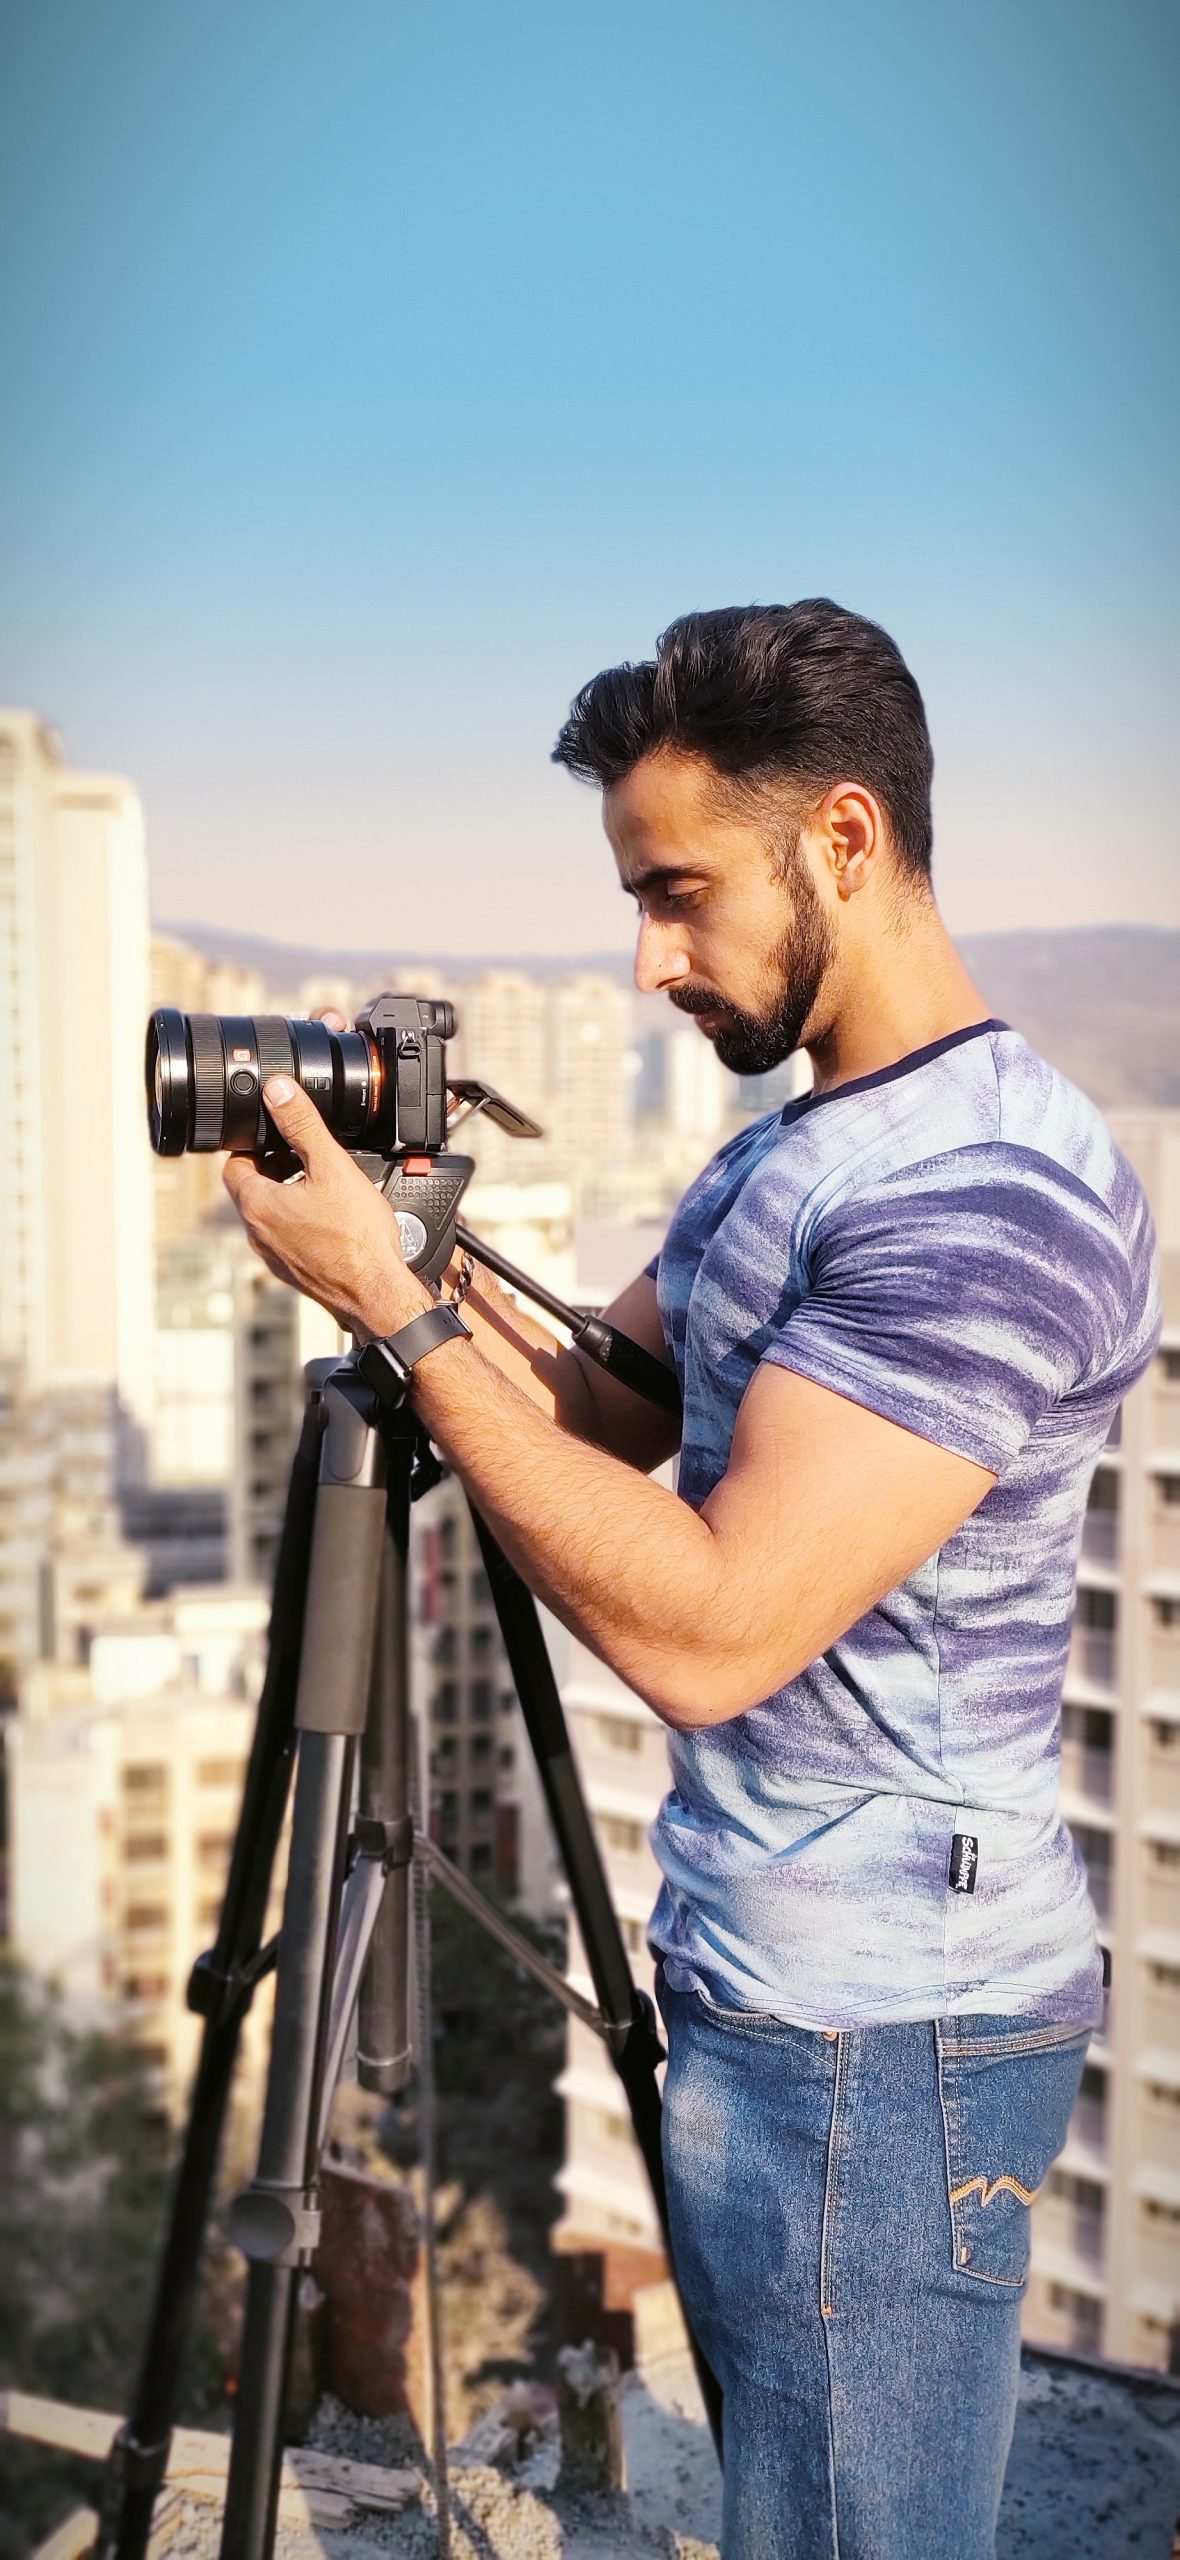 Man clicking picture with camera